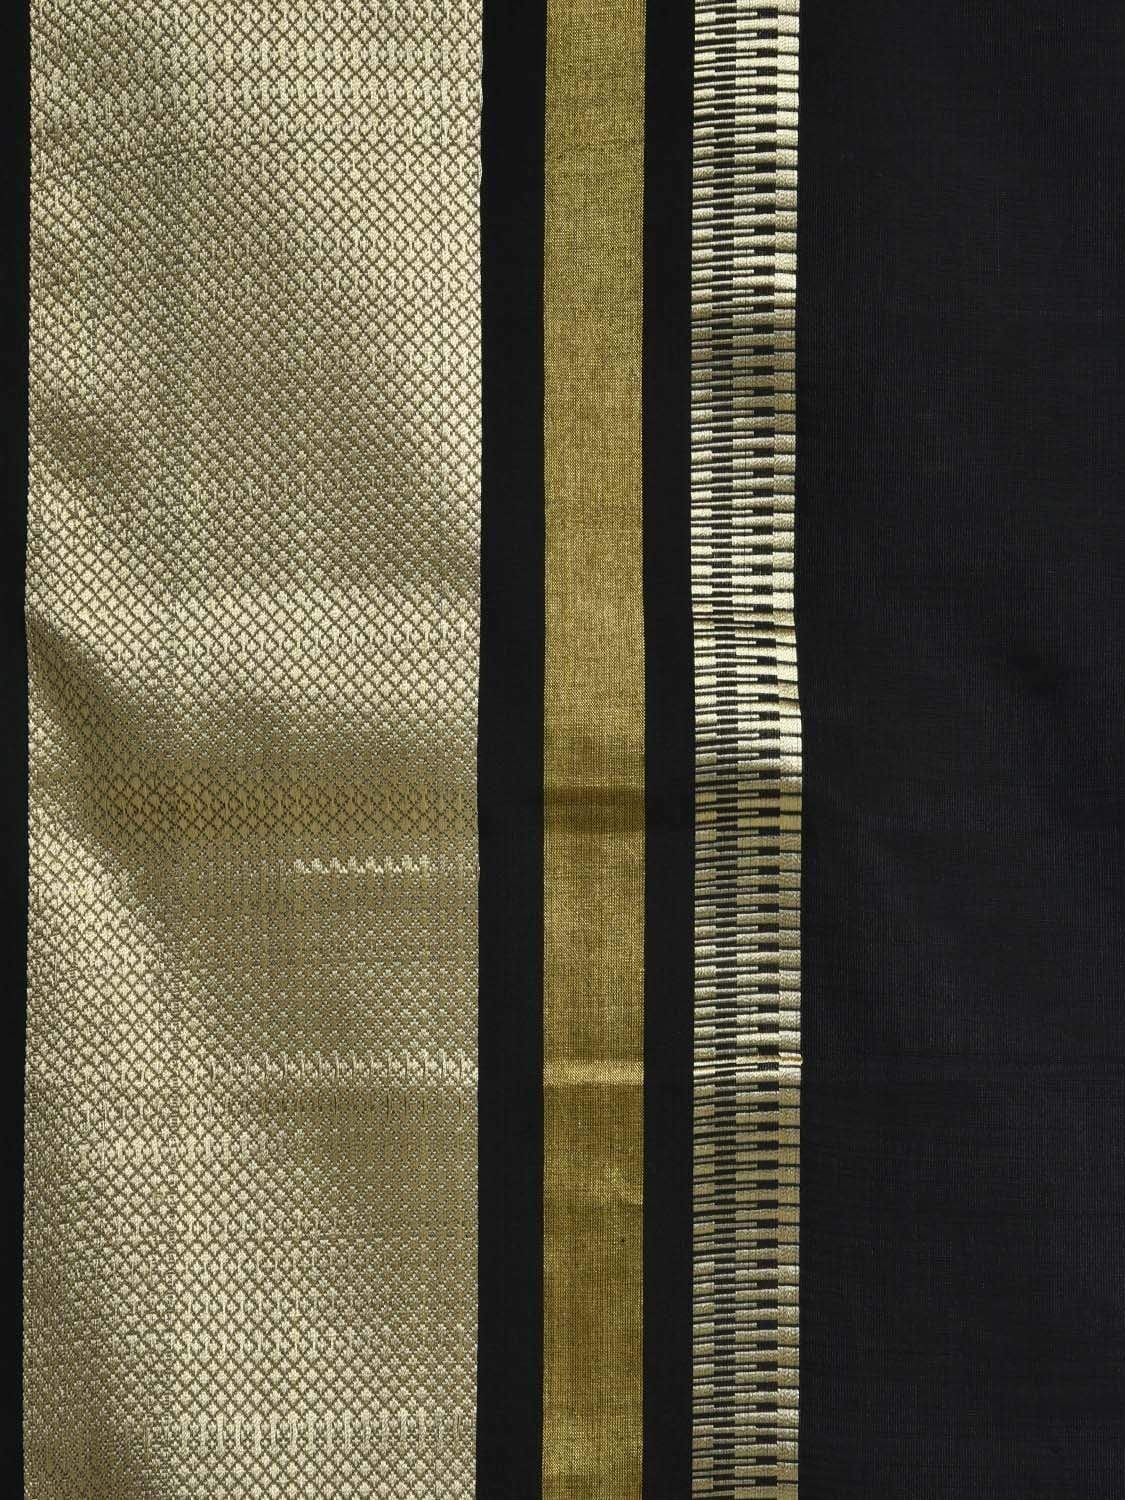 Black Maheshwari Cotton Silk Handloom Plain Saree with Border Design m0110